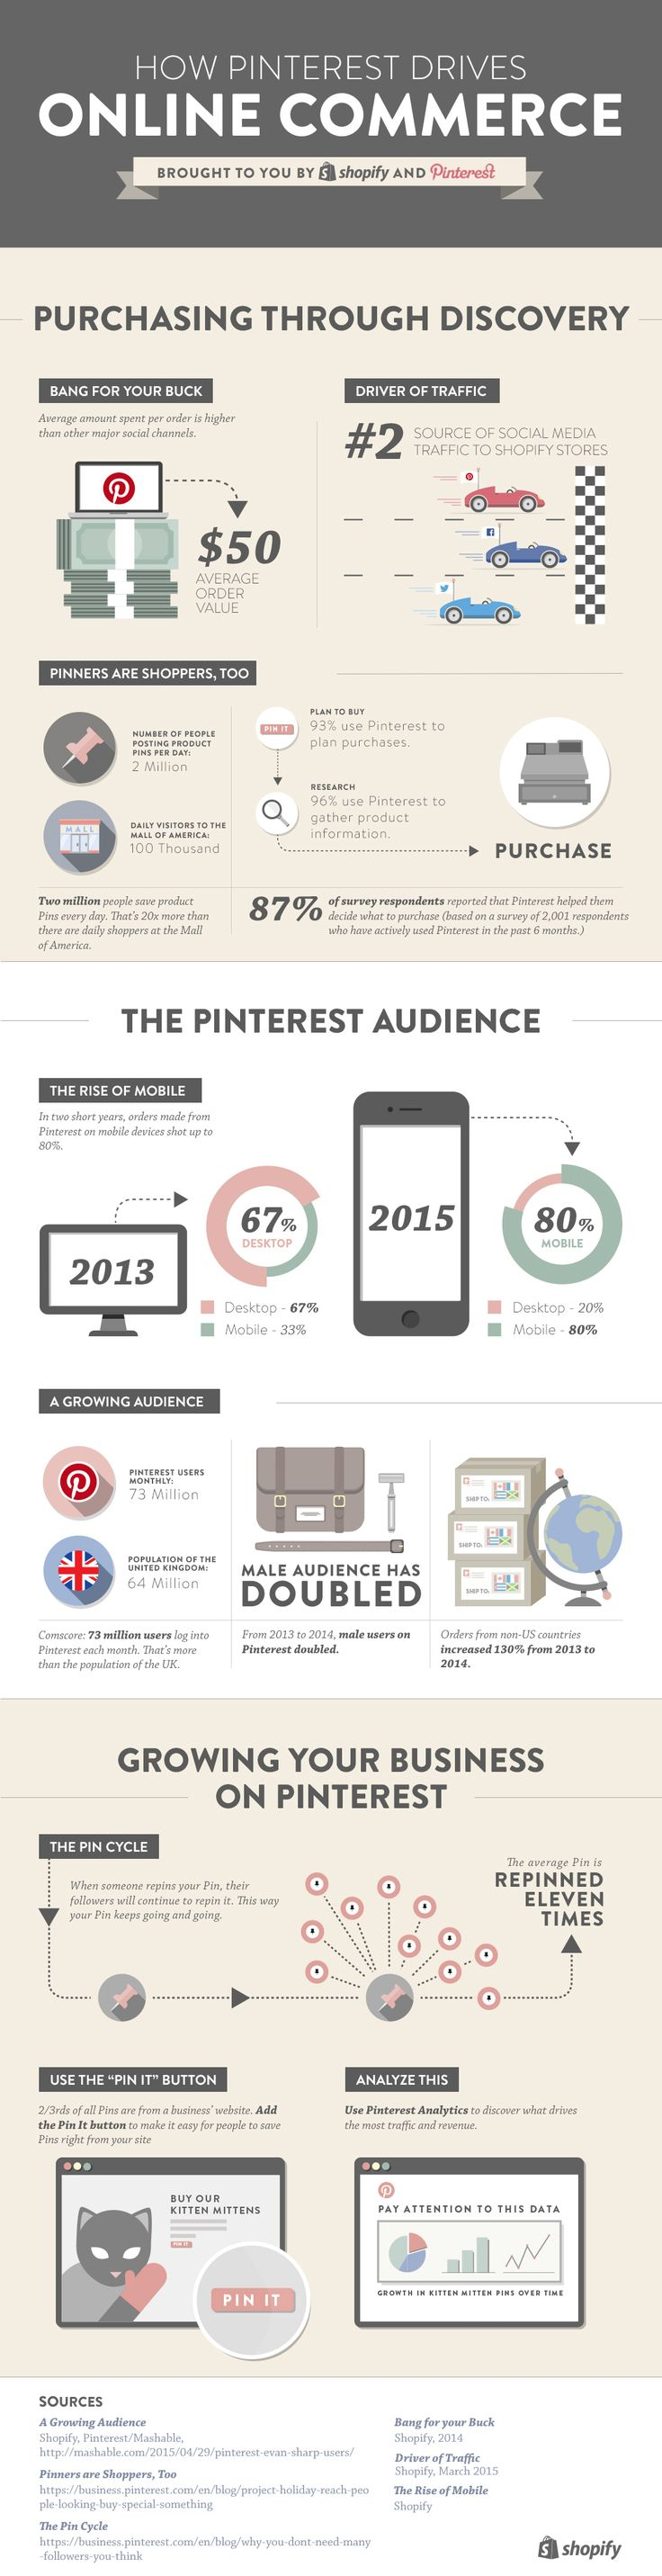 93% of users plan purchases on Pinterest----- Pinterest drives traffic — and commerce — online